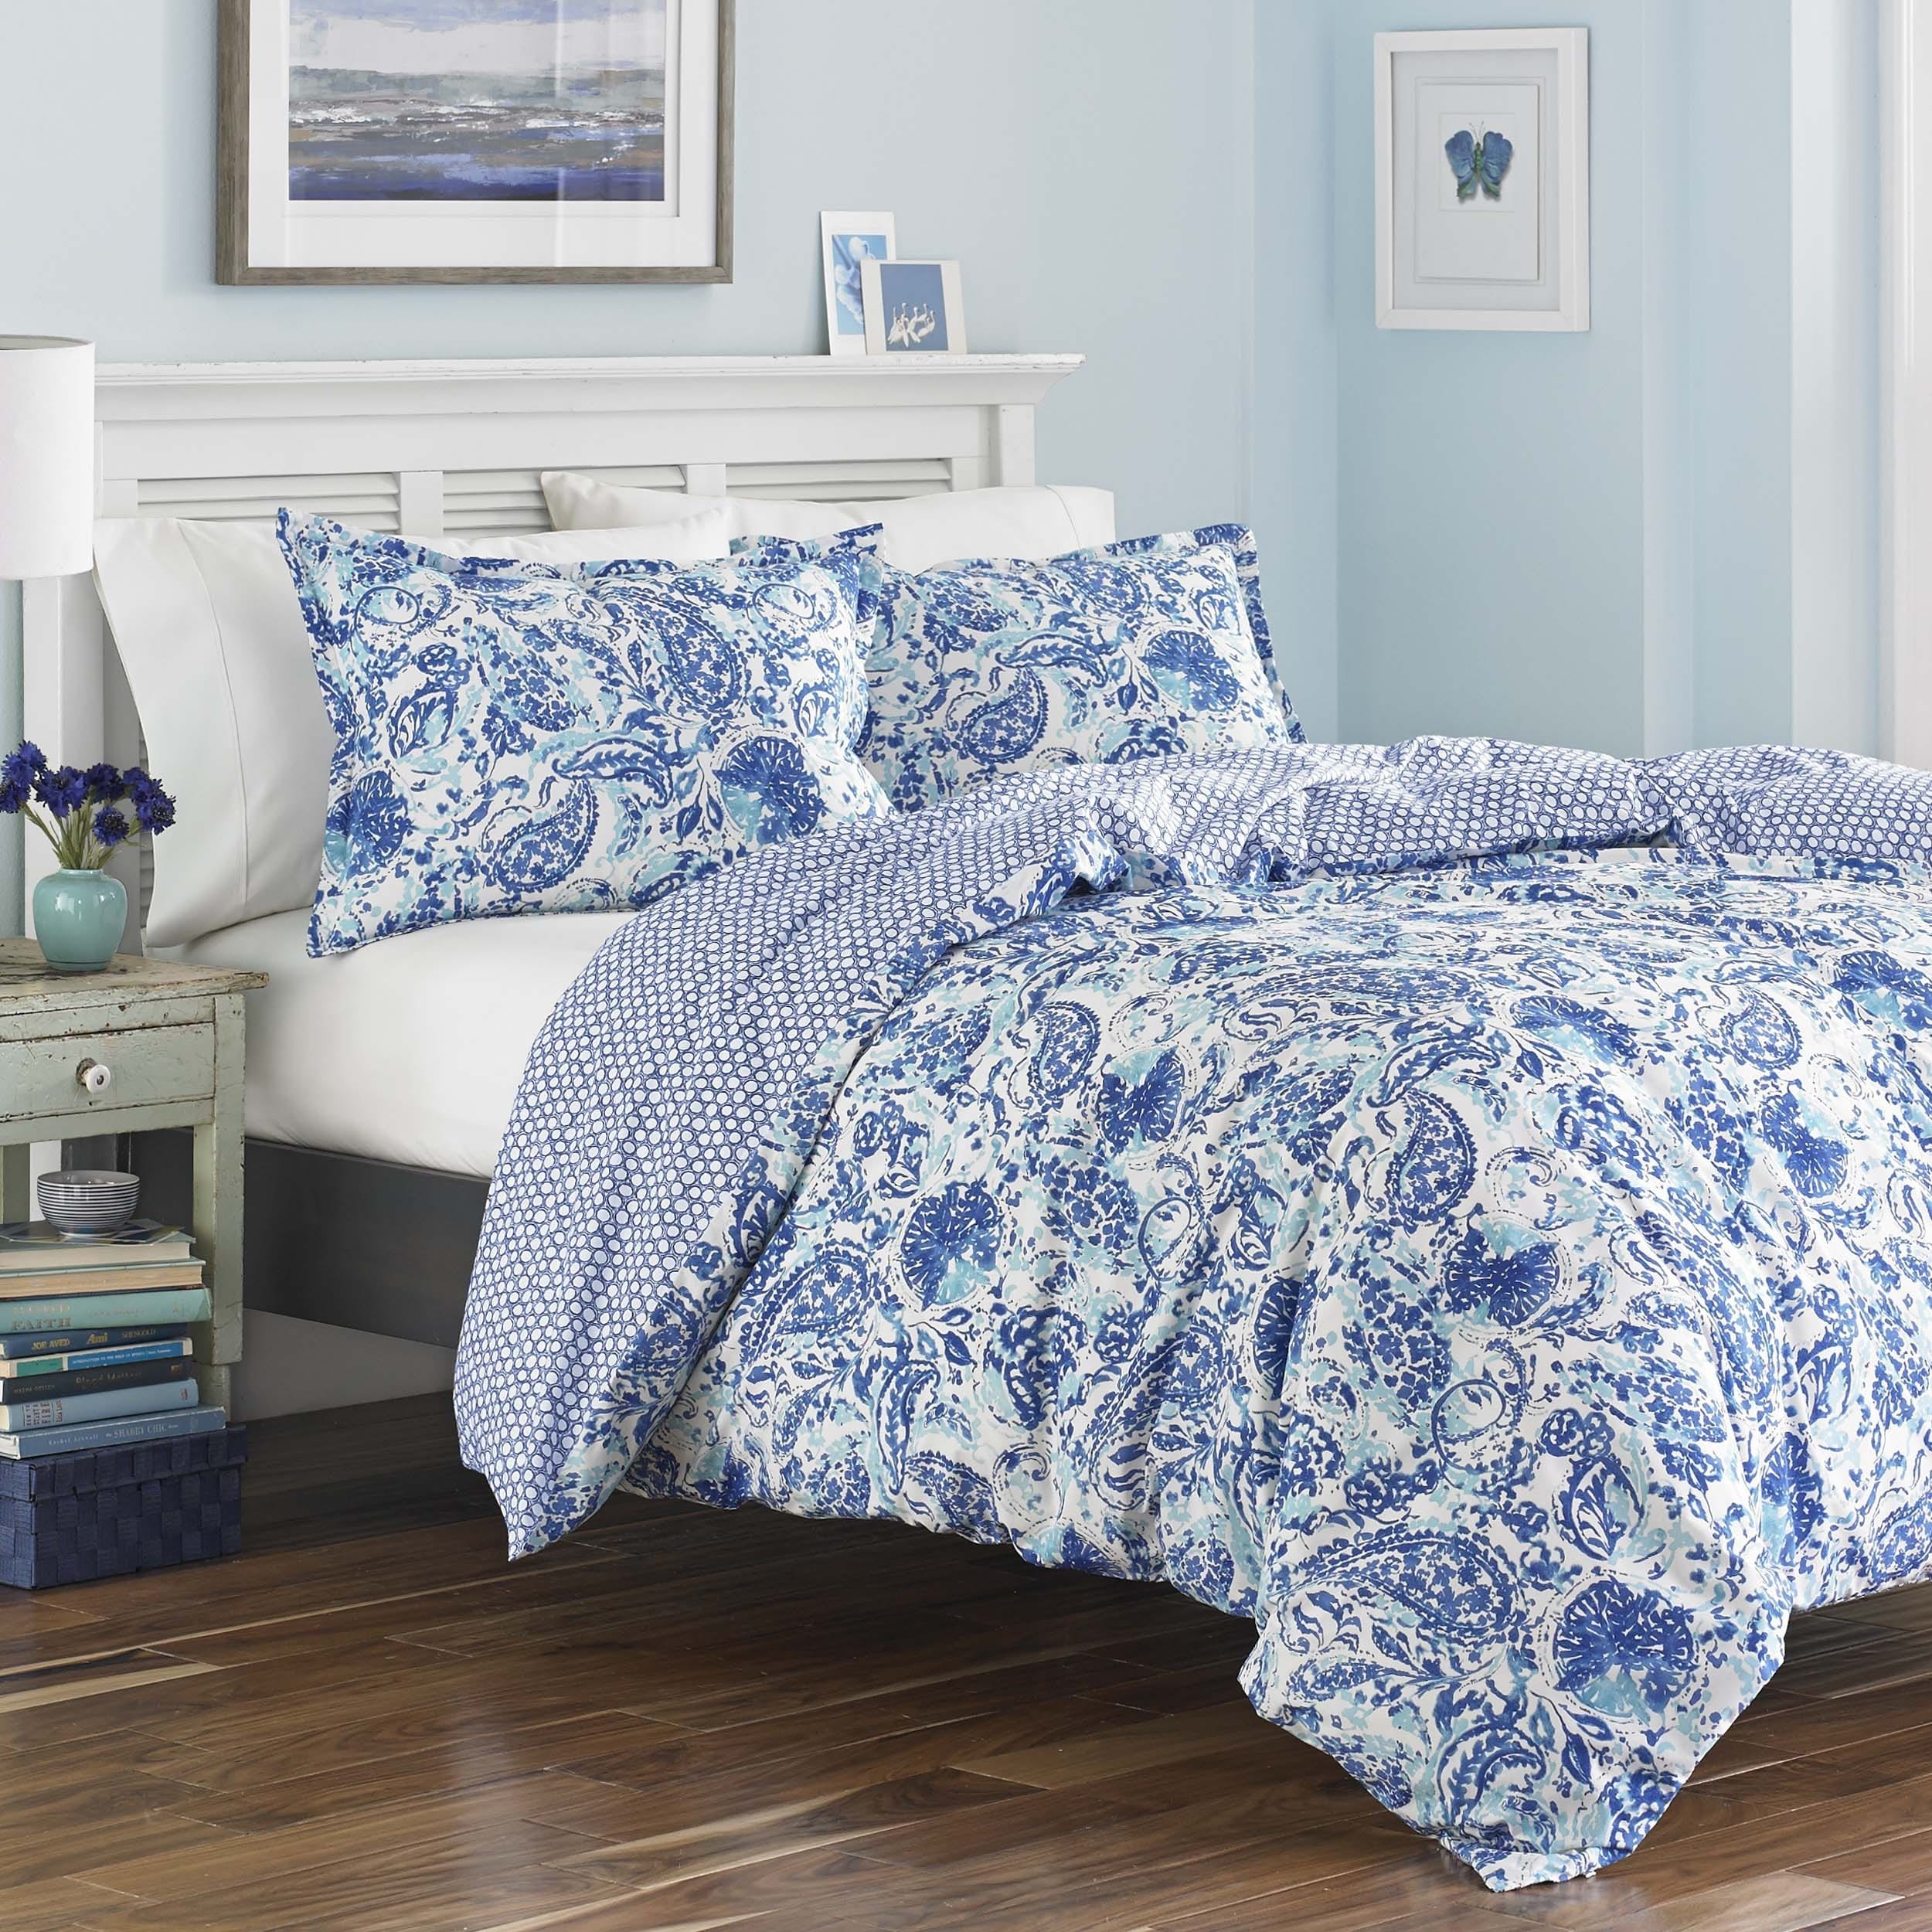 Poppy Fritz Brooke Cobalt And White Paisley Cotton Duvet Cover Set On Sale Overstock 12128809 Blue Navy Queen 3 Piece